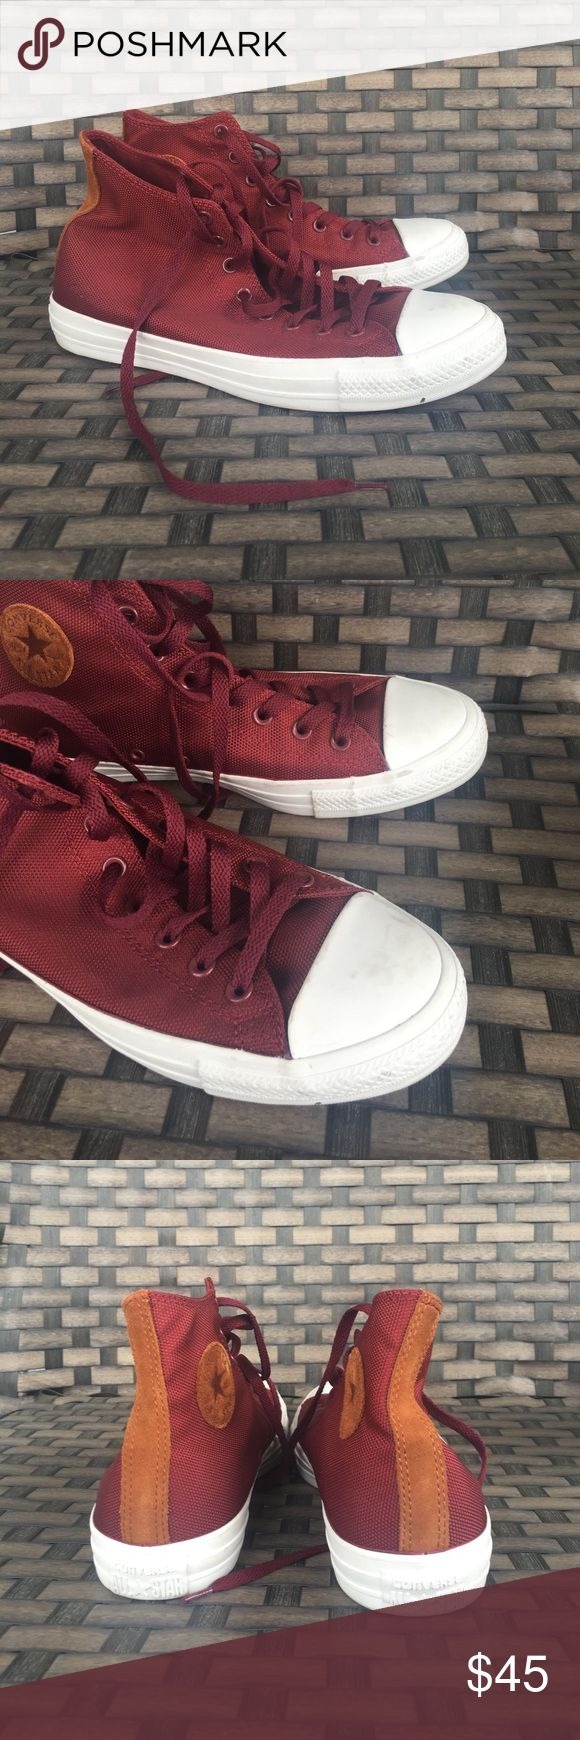 Maroon men's hi top converse 10 Men's 10 women's 12 worn a few times some minor marks that should clean right up. Jansport edition Converse Shoes Athletic Shoes